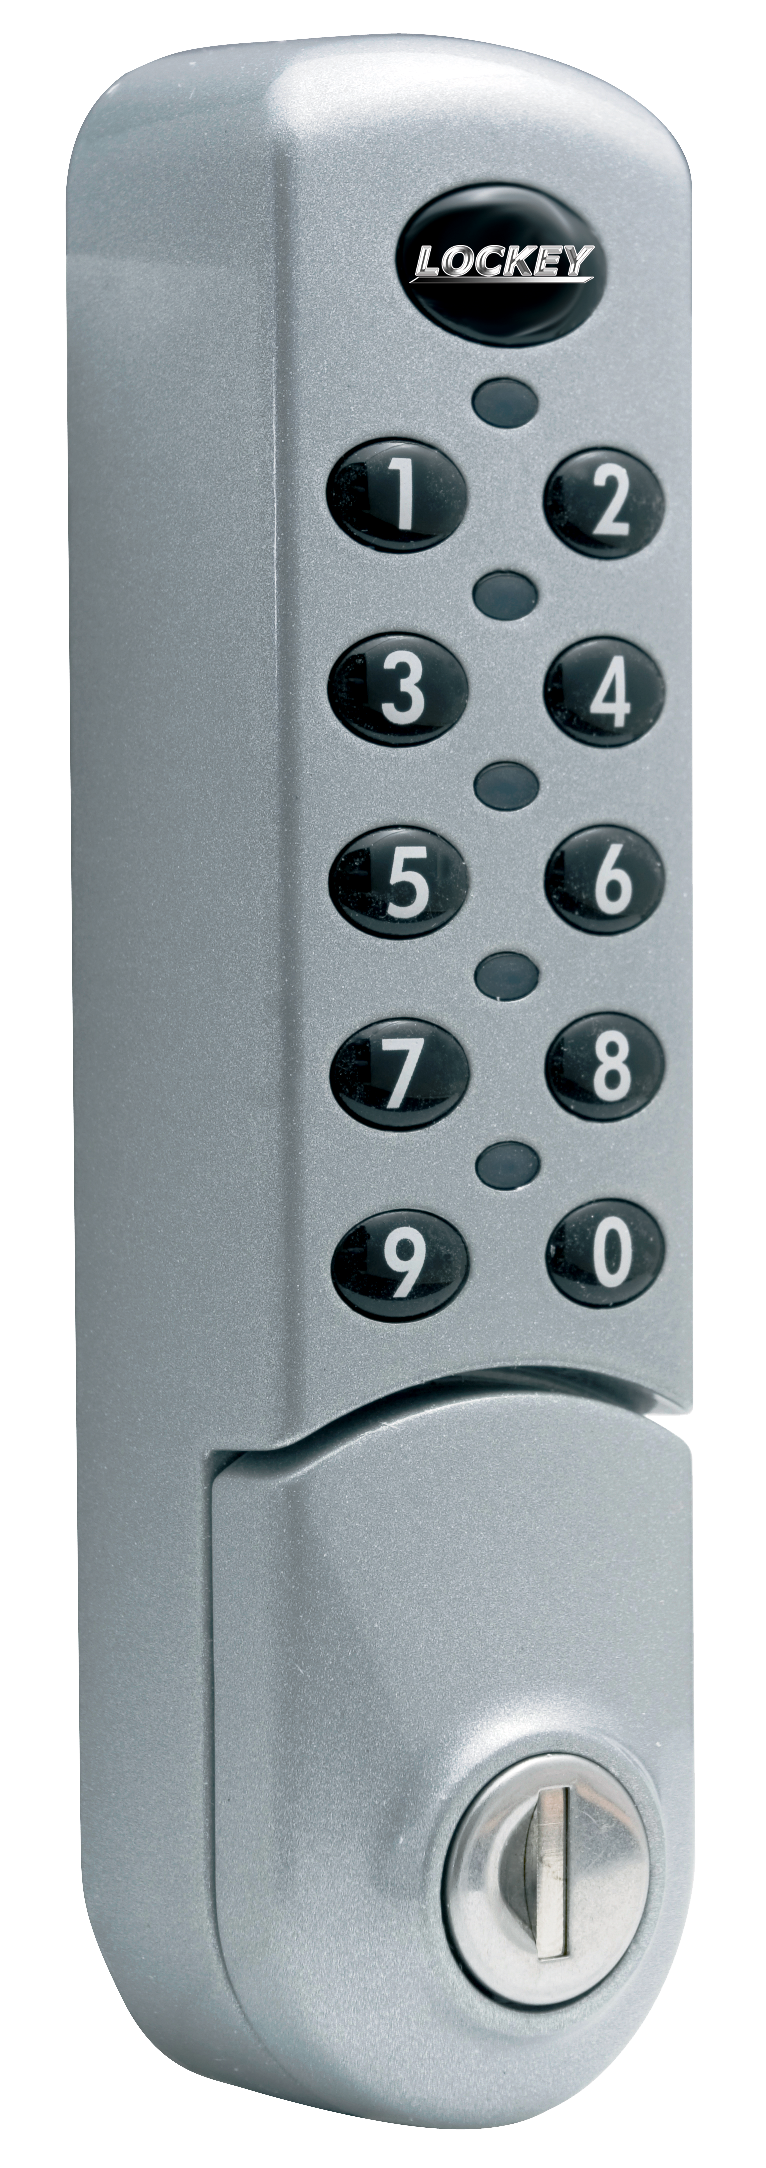 Lockey EC-780 Vertical Keyless Electronic Cabinet or Locker Lock